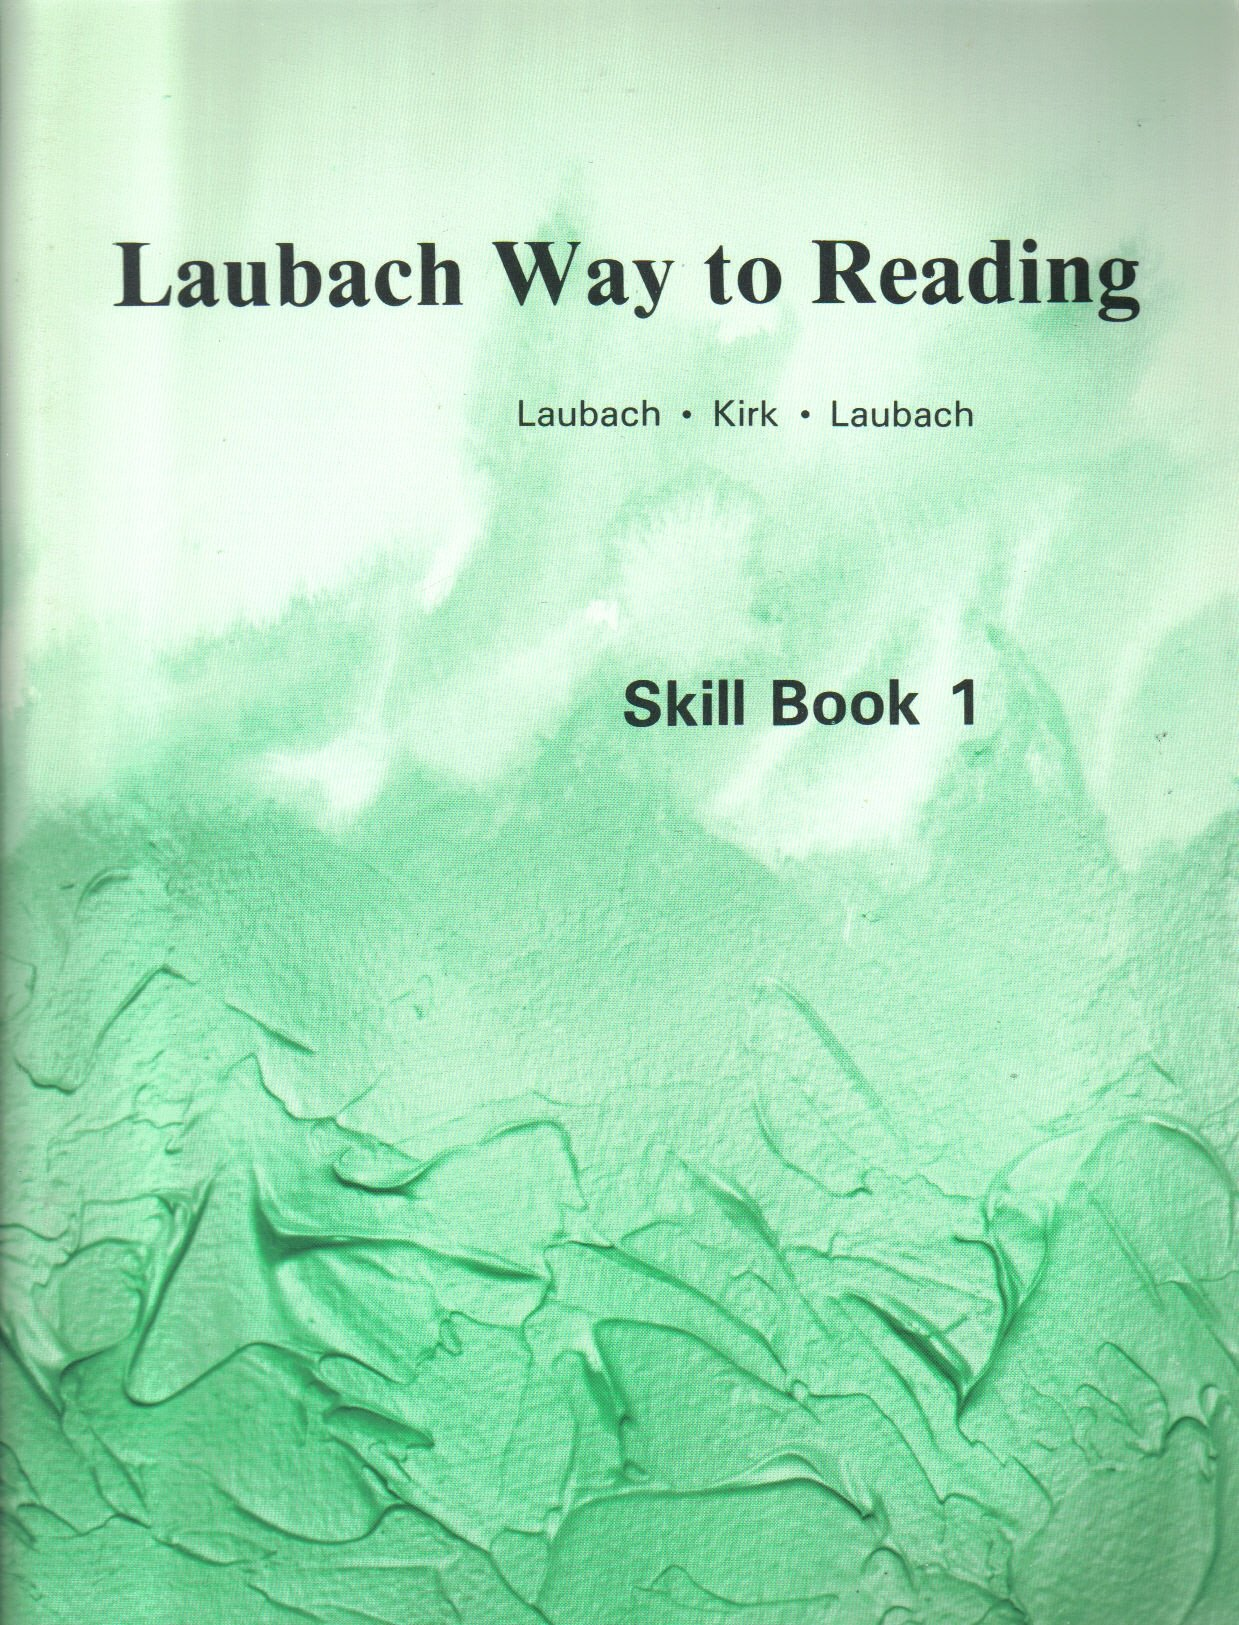 Laubach Way to Reading, Skill Book 1: Sounds and Names of Letters: Frank C.  Laubach, Elizabeth Mooney Kirk, Robert S. Laubach: 9780883369012:  Amazon.com: ...